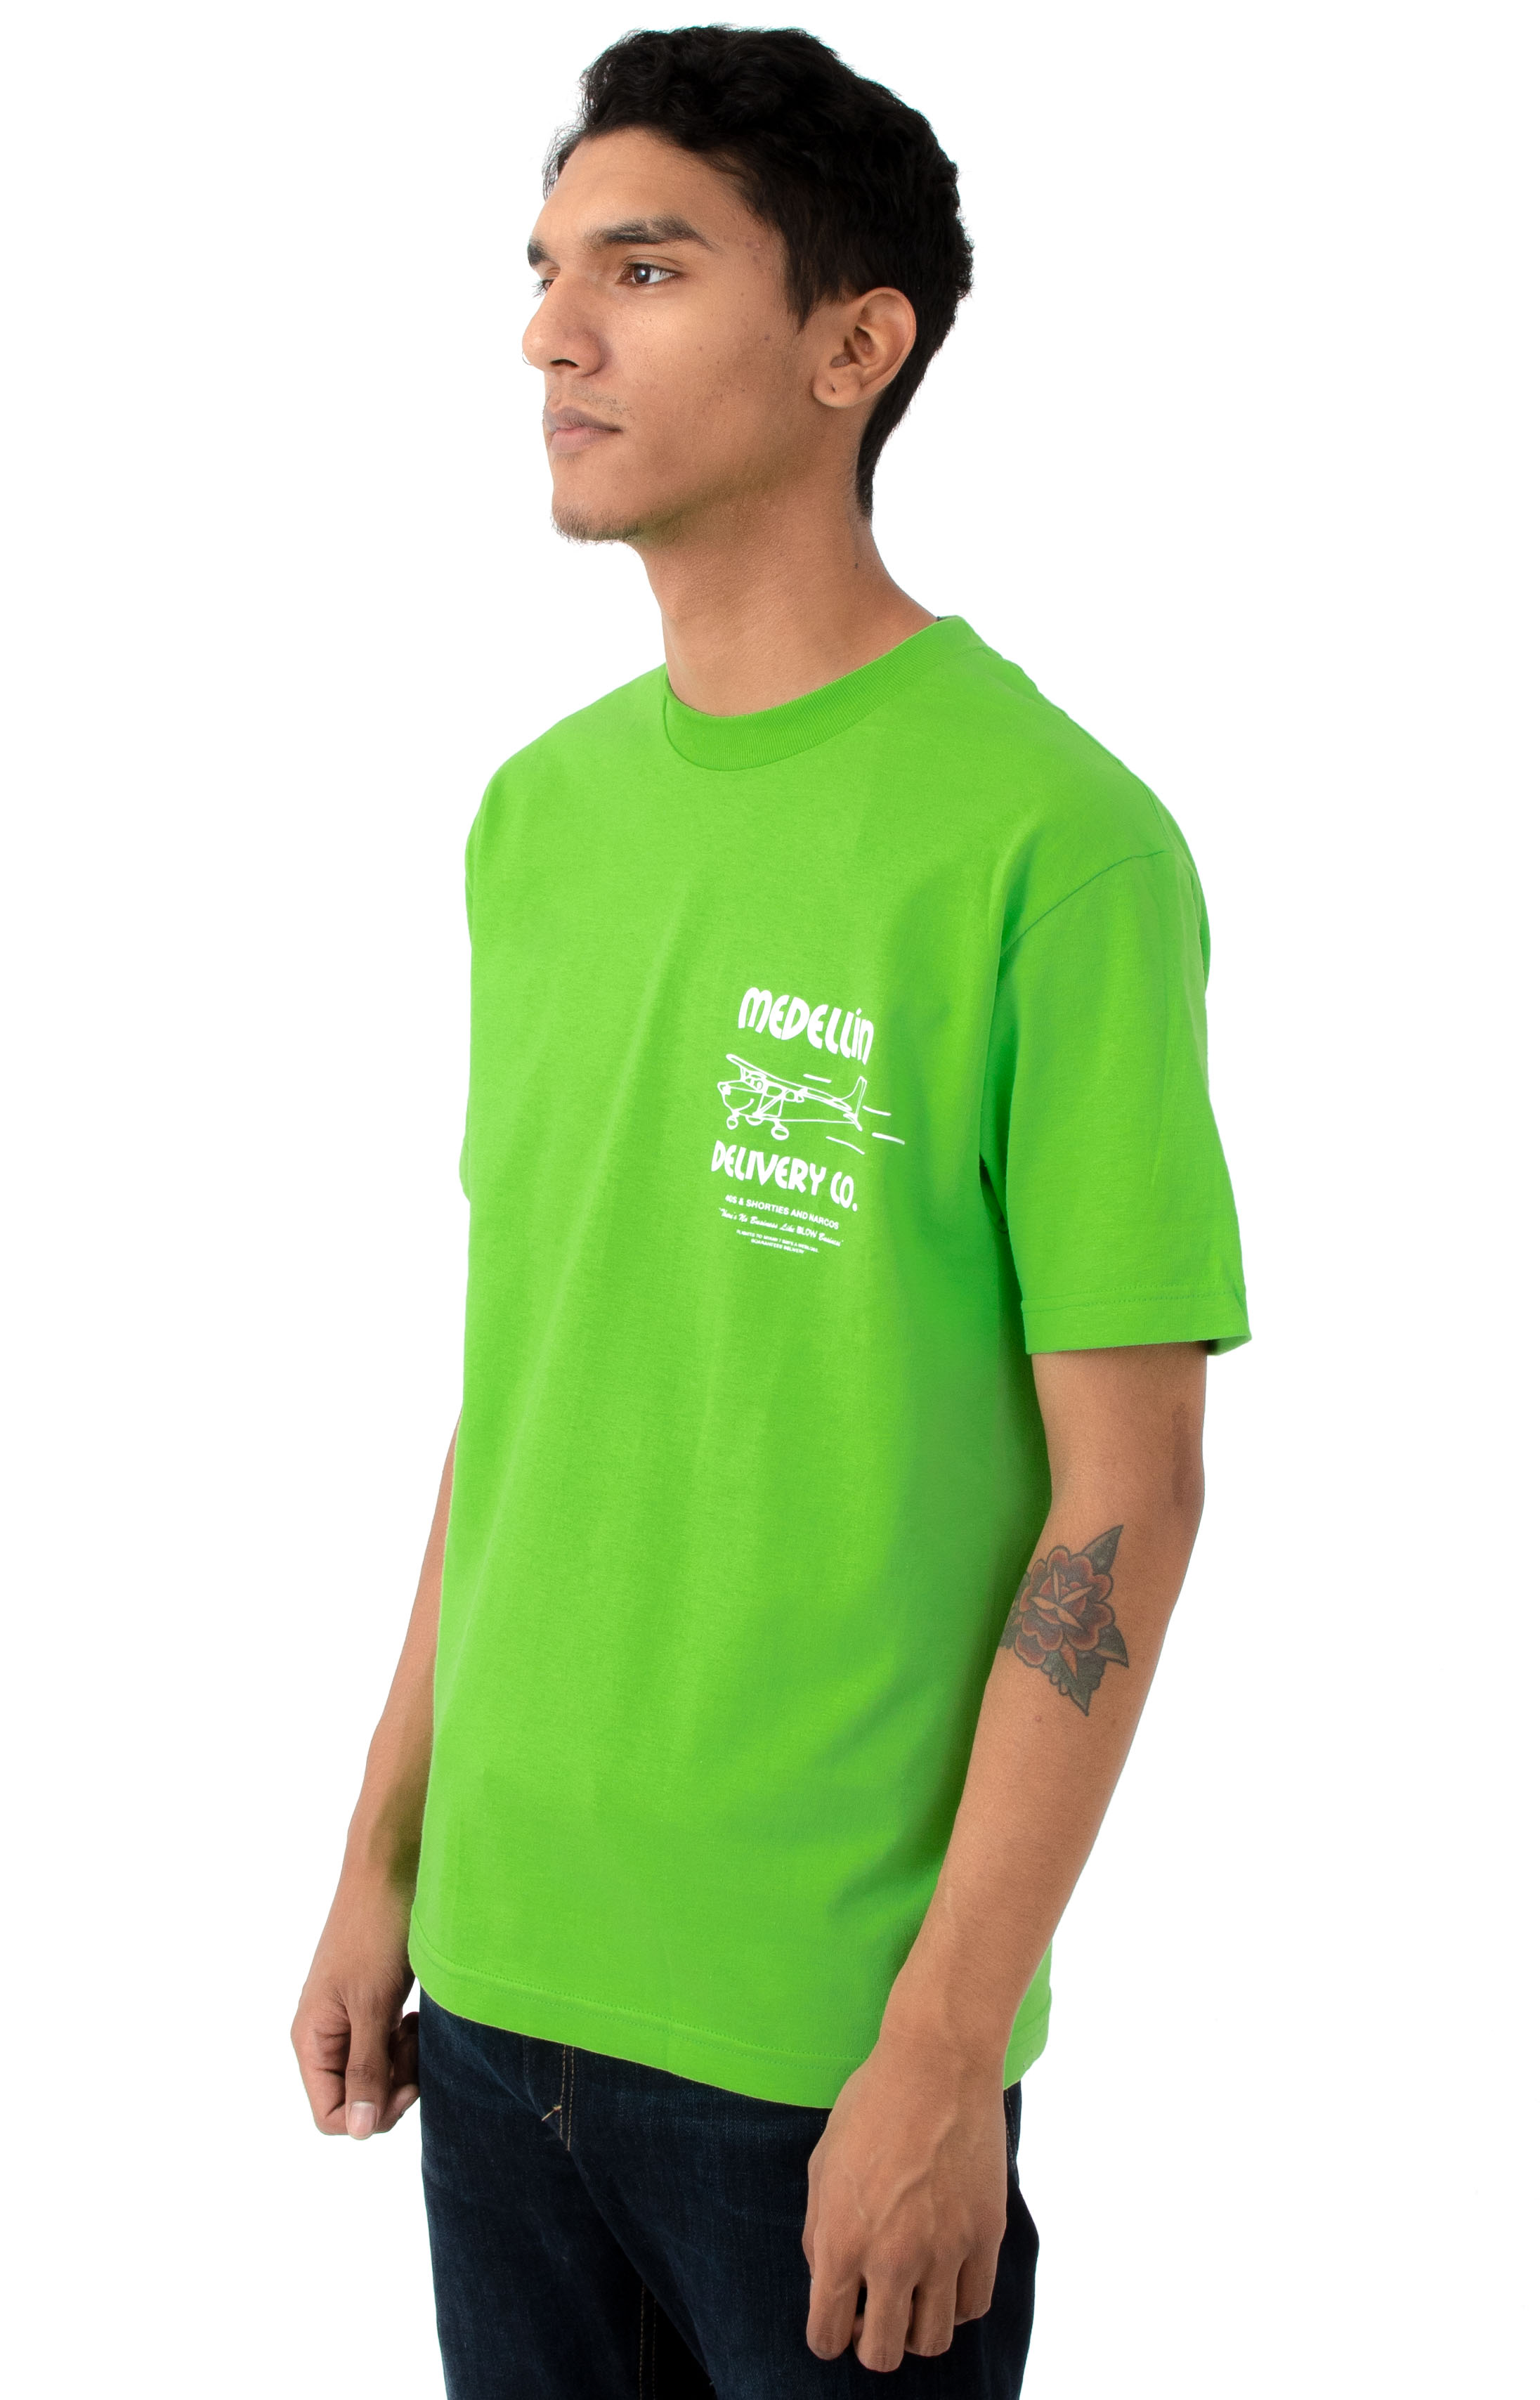 Delivery T-Shirt - Lime 3